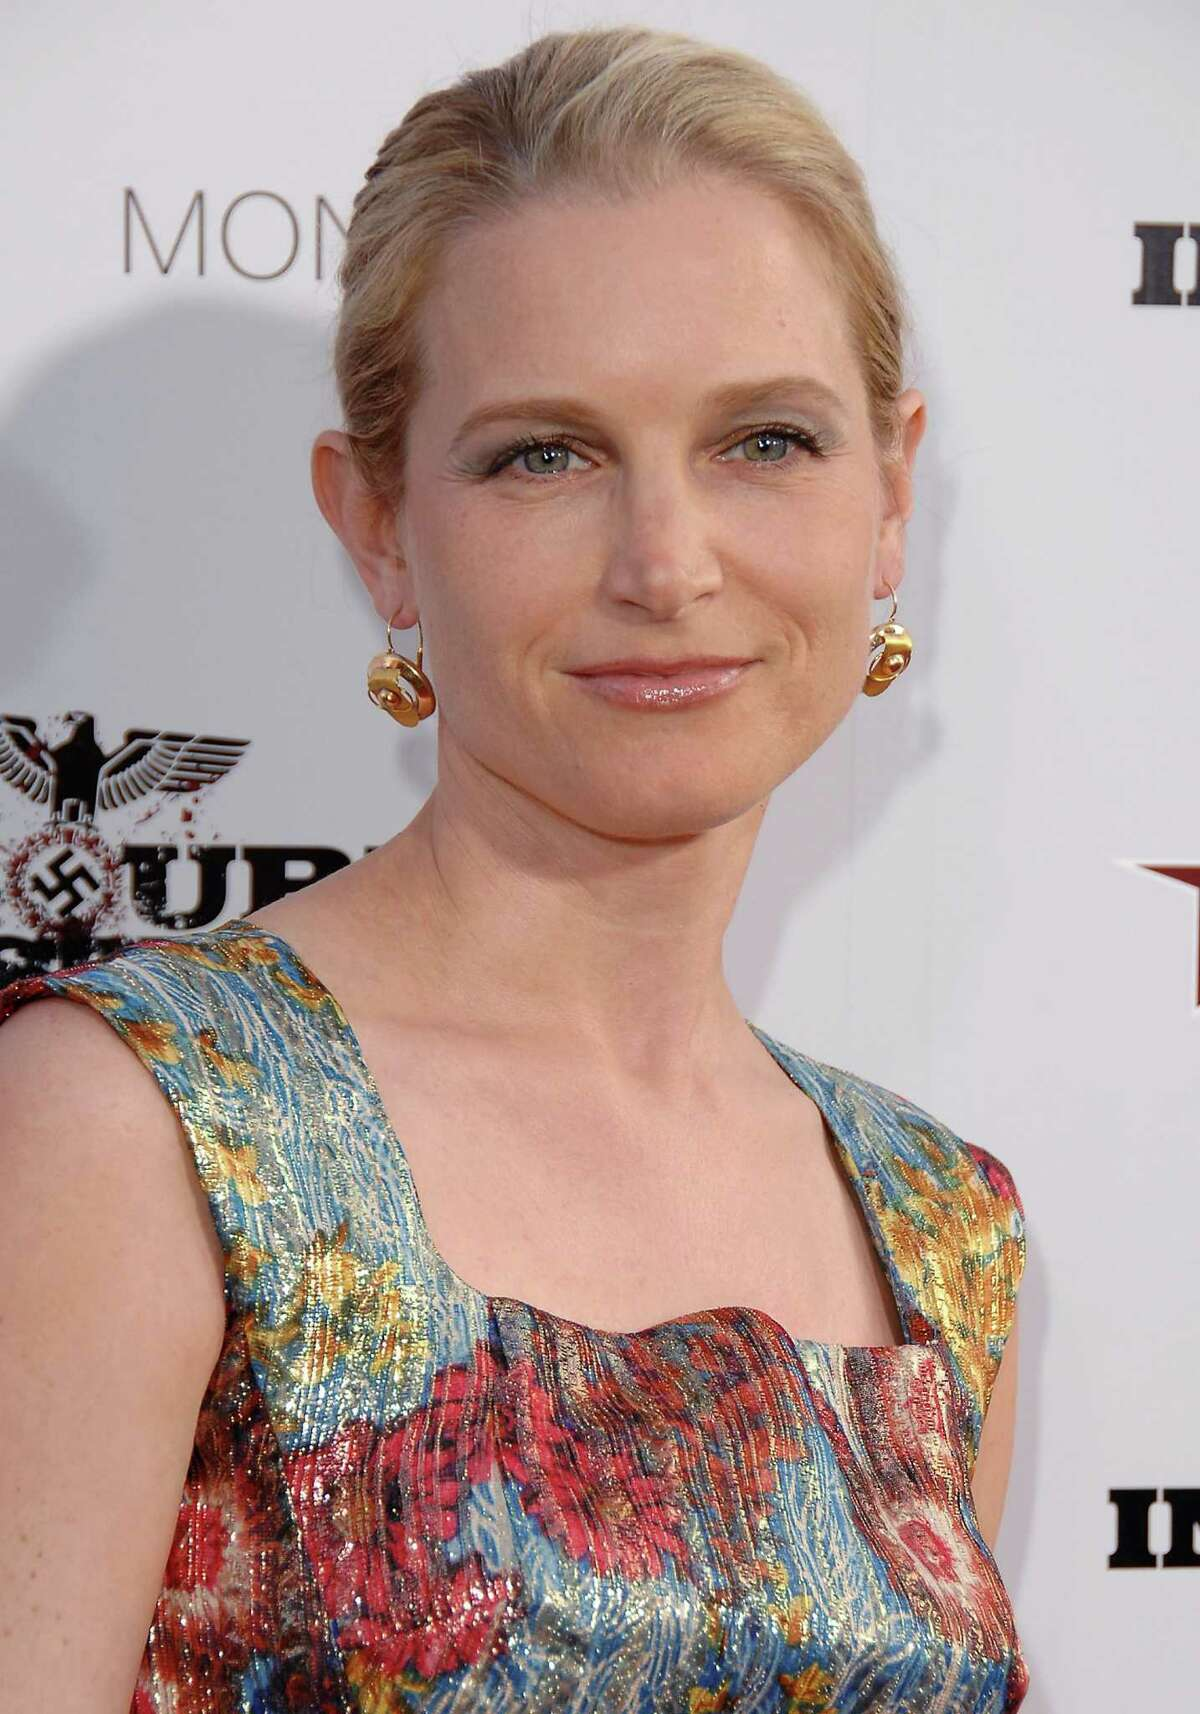 Bridget Fonda Now she has been out of the